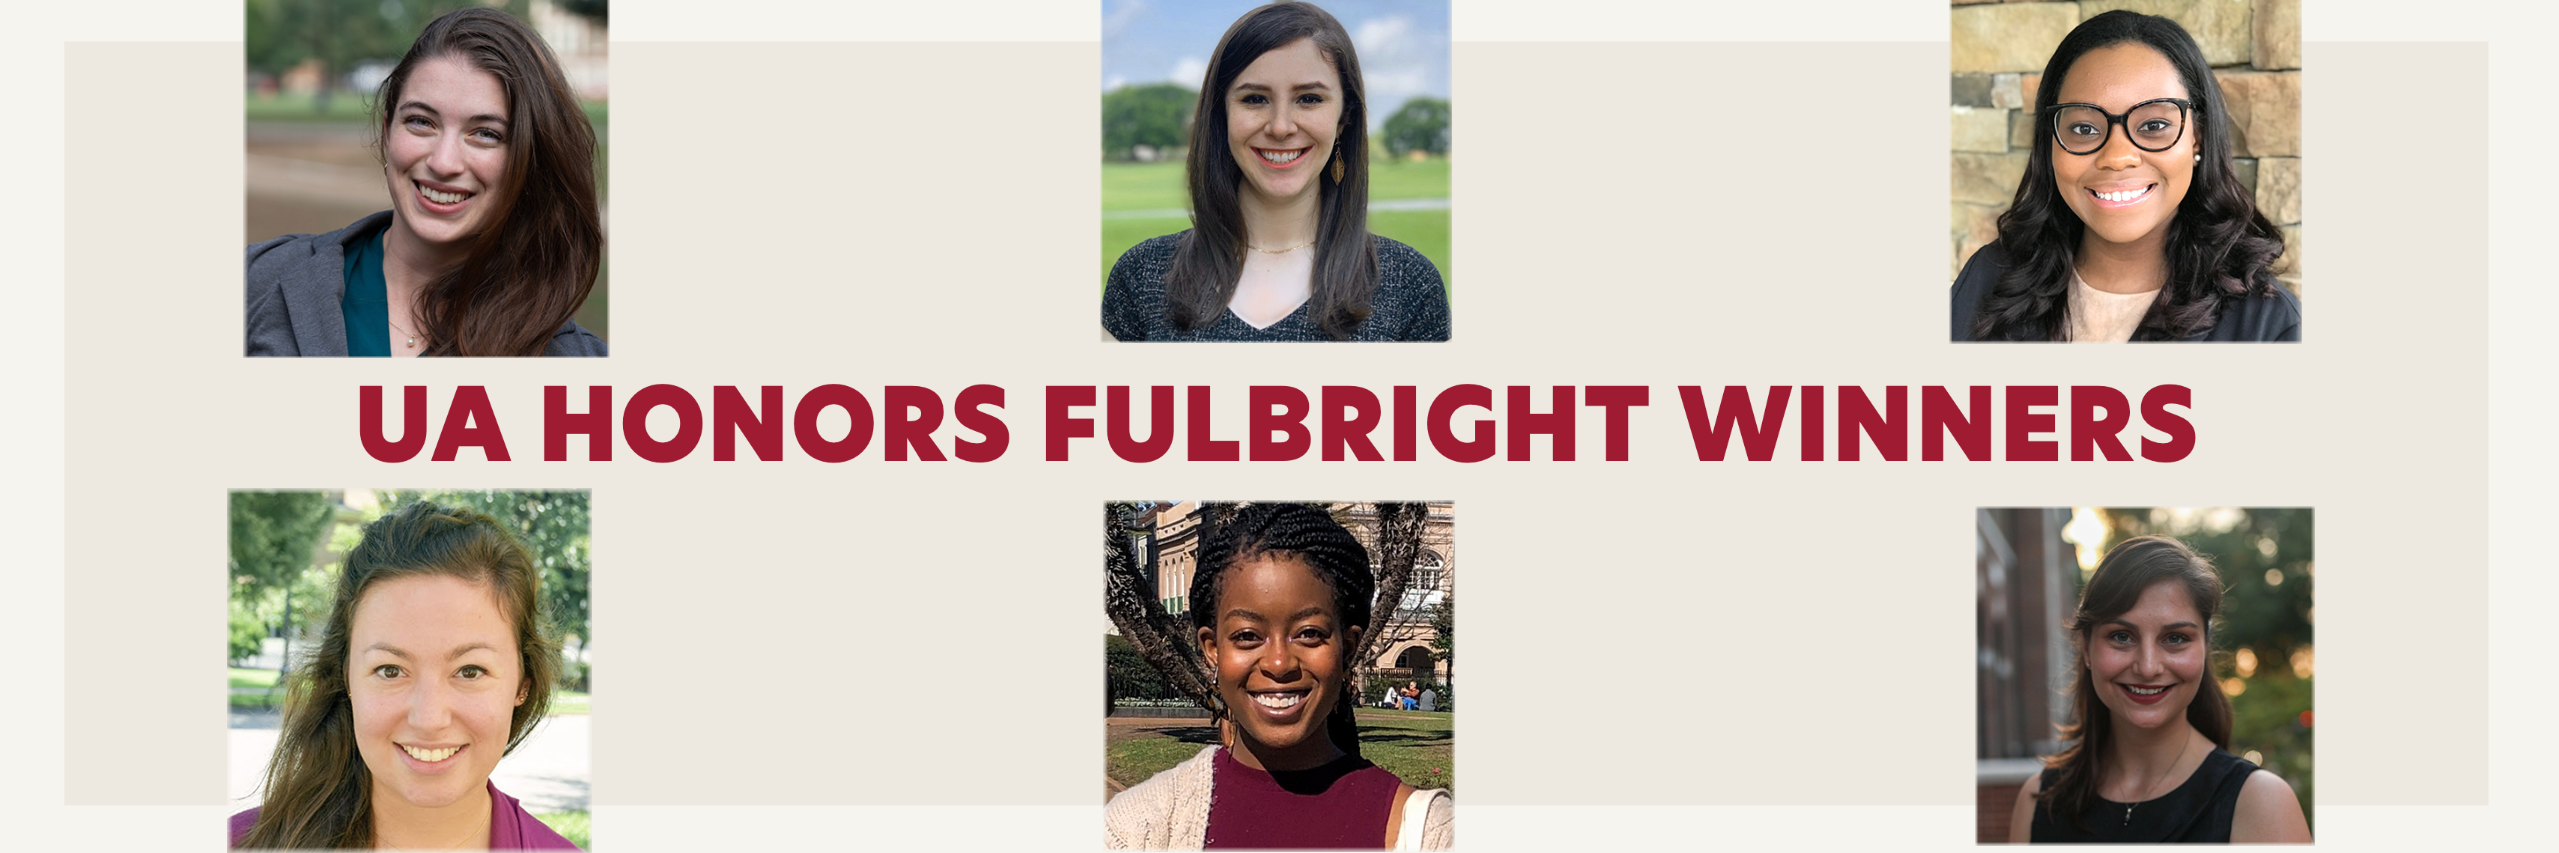 Main Student Story Image - Fulbright Winners